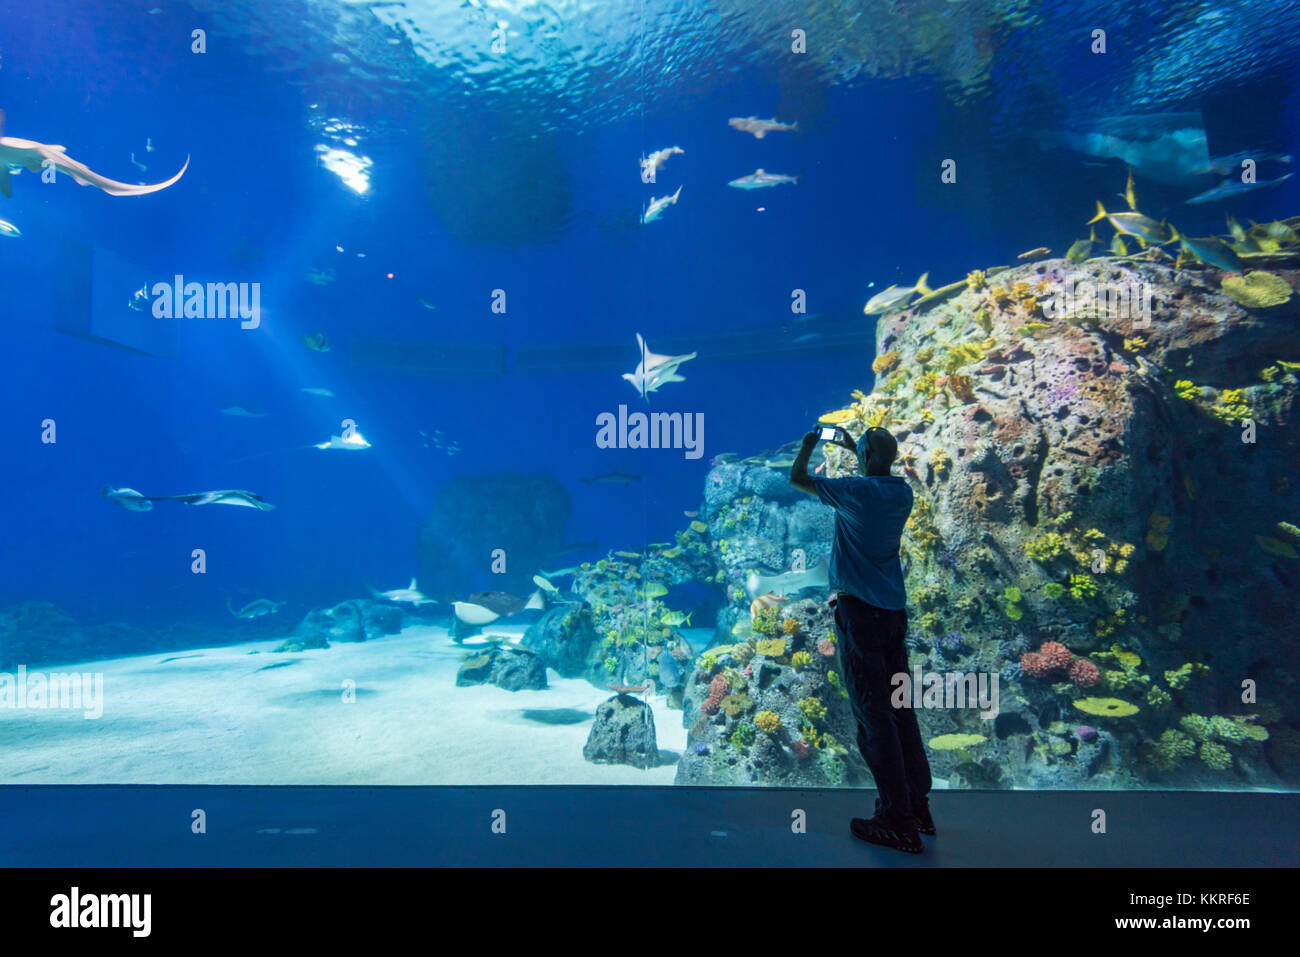 Kastrup, Copenhagen, Hillerod, Denmark. National Aquarium or Blue Planet (Den Bla Planet). - Stock Image